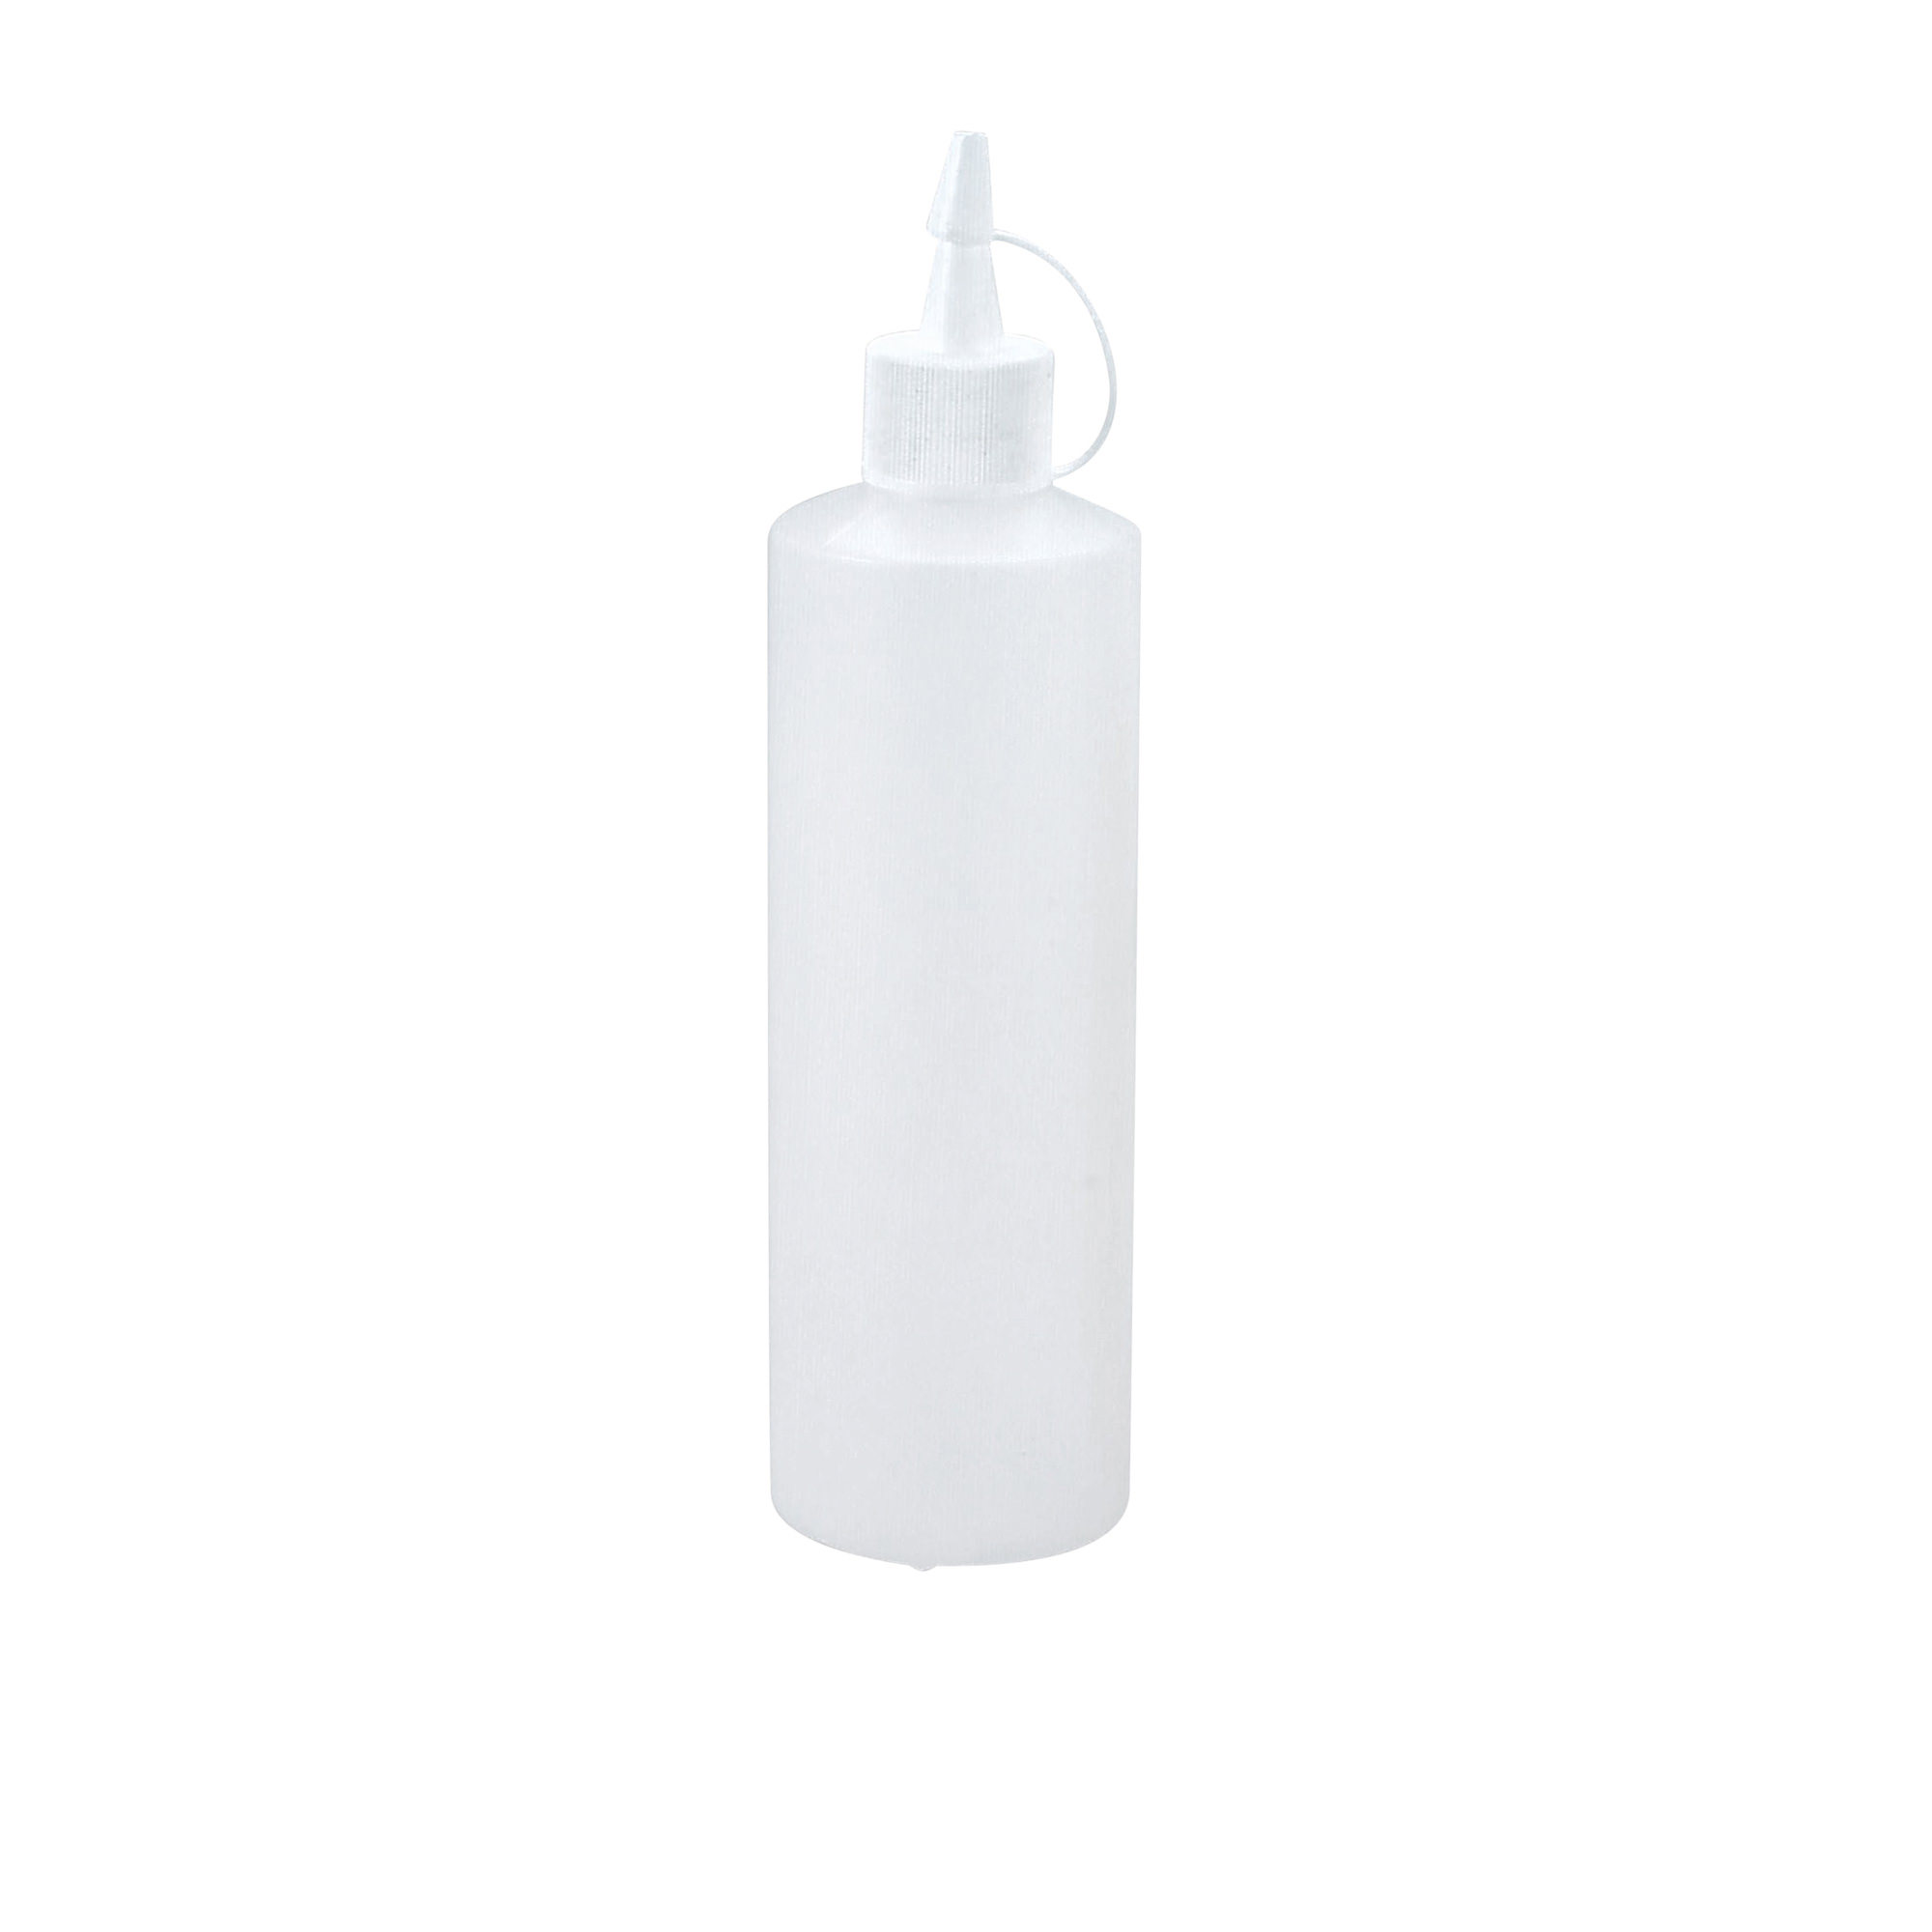 Chef Inox Clear Plastic Squeeze Bottle 500ml